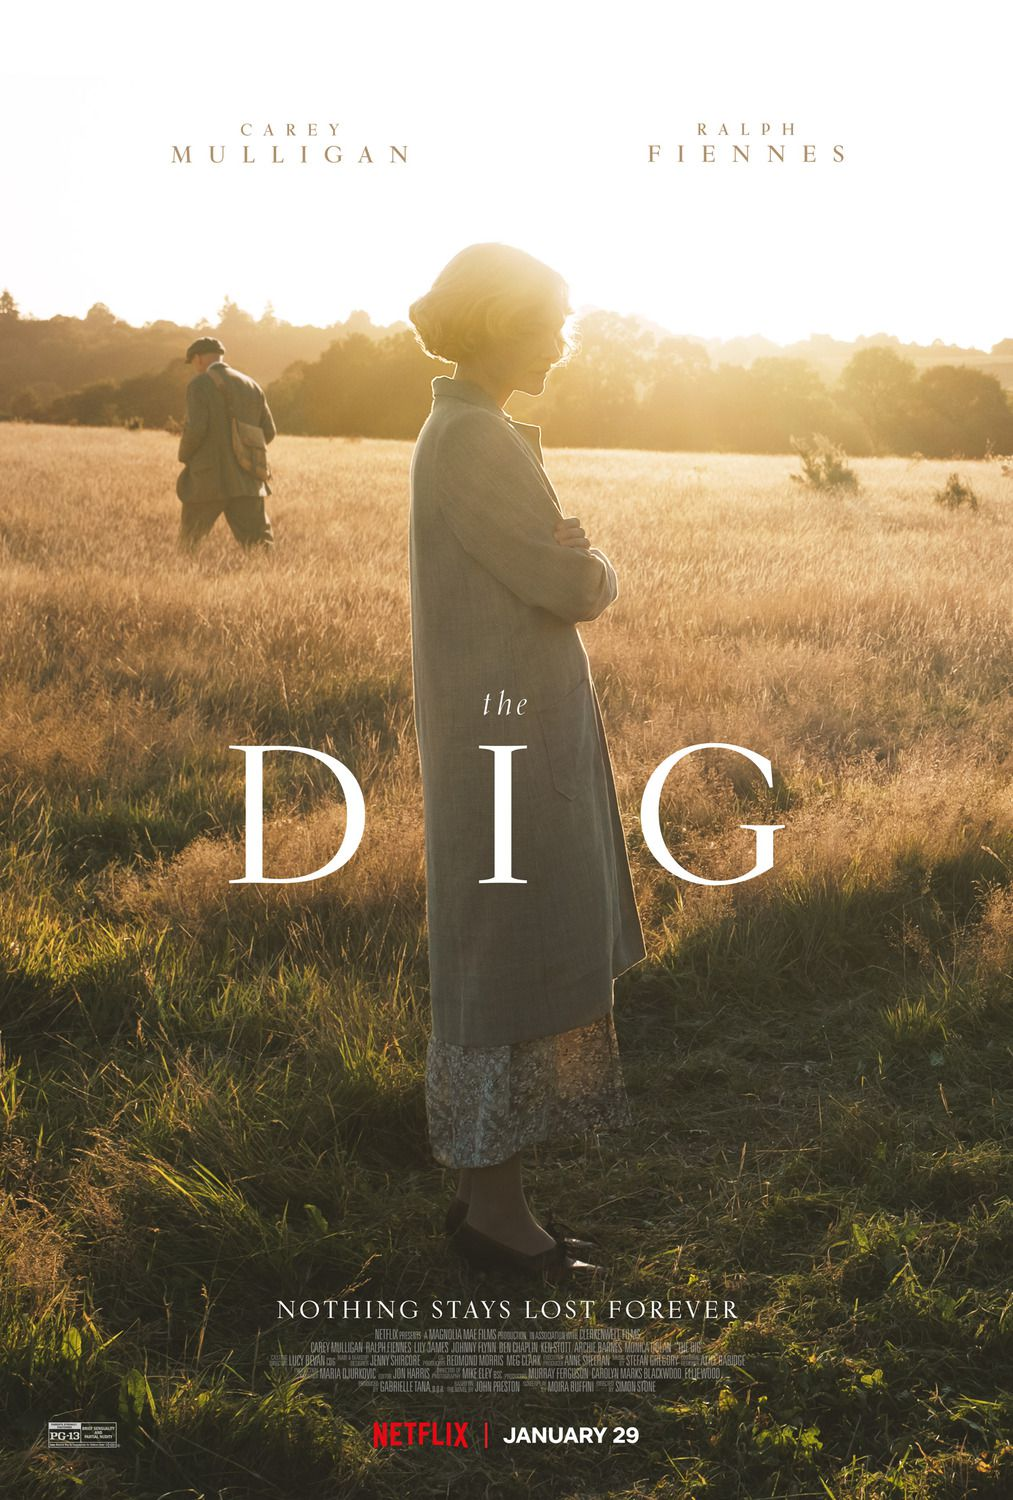 The Dig - Film (2021) streaming VF gratuit complet